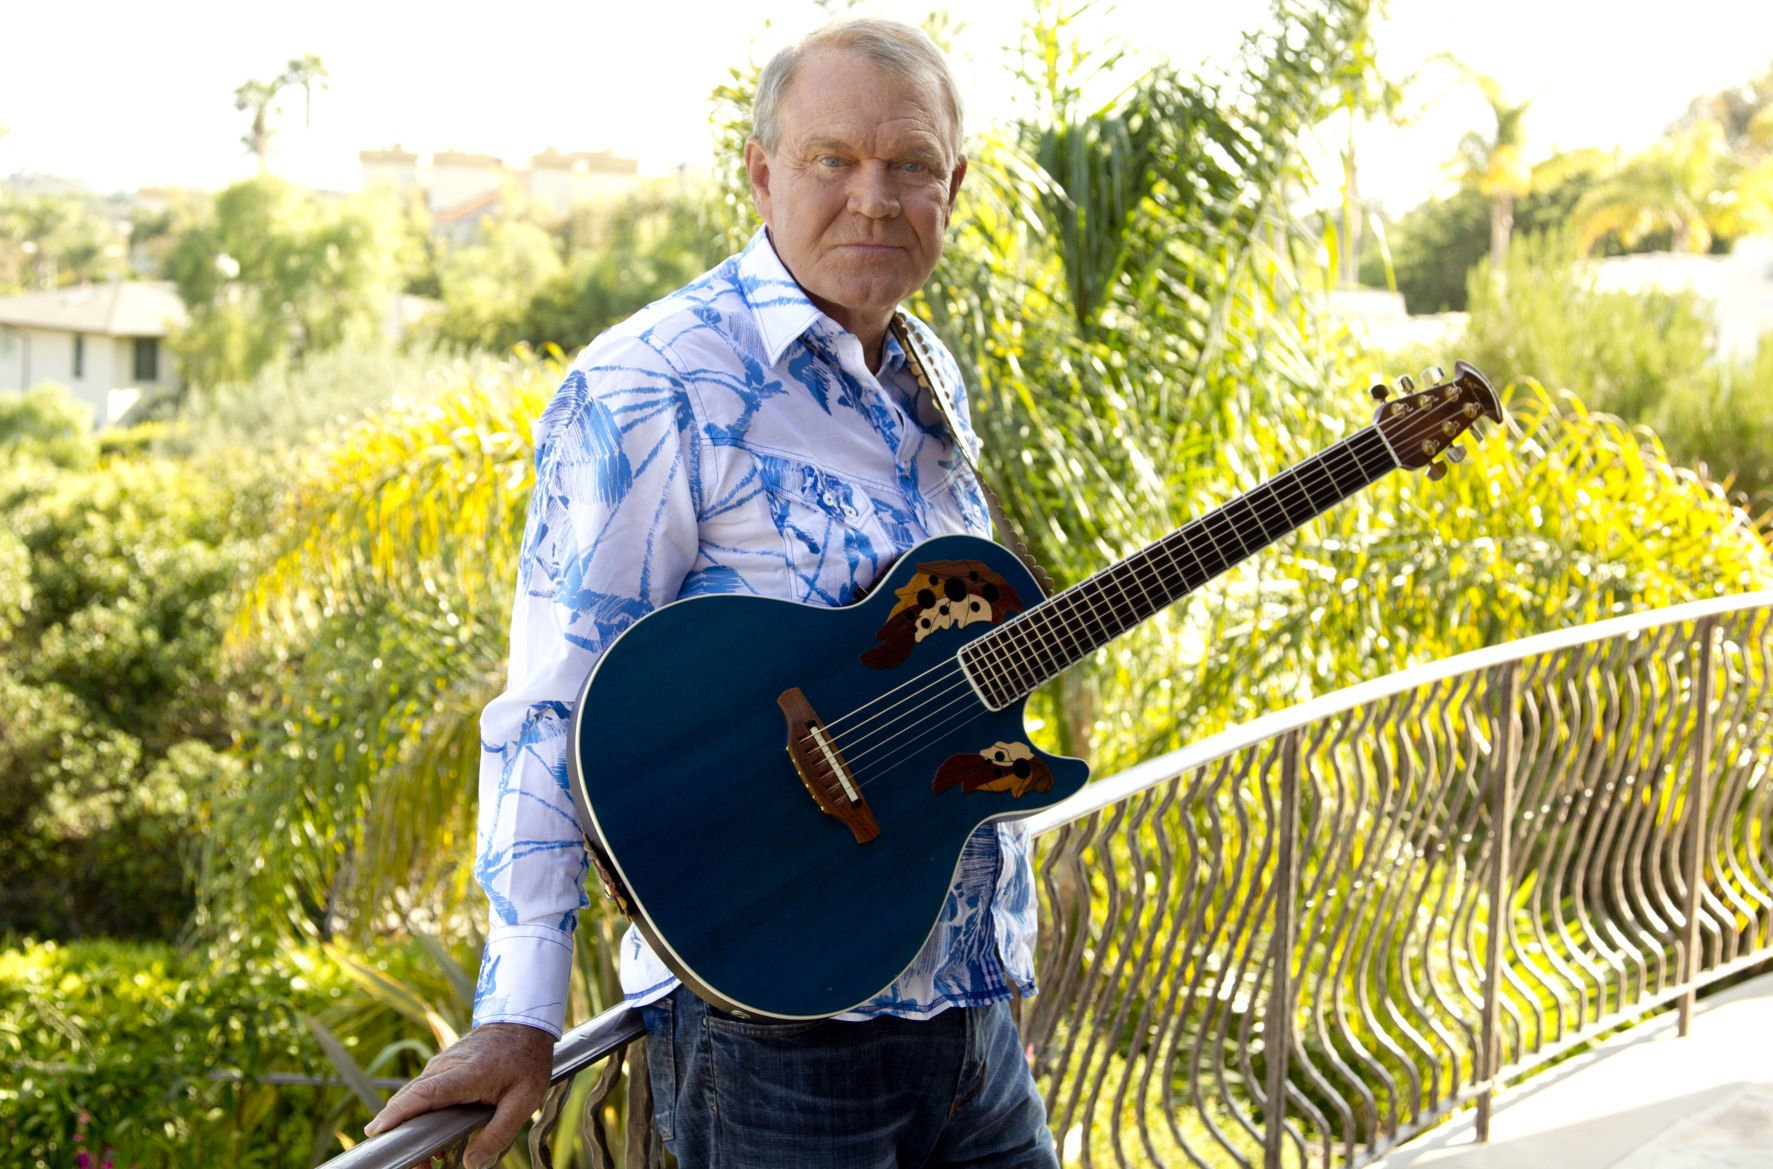 Remembering Glen Campbell, the rhinestone cowboy who lost